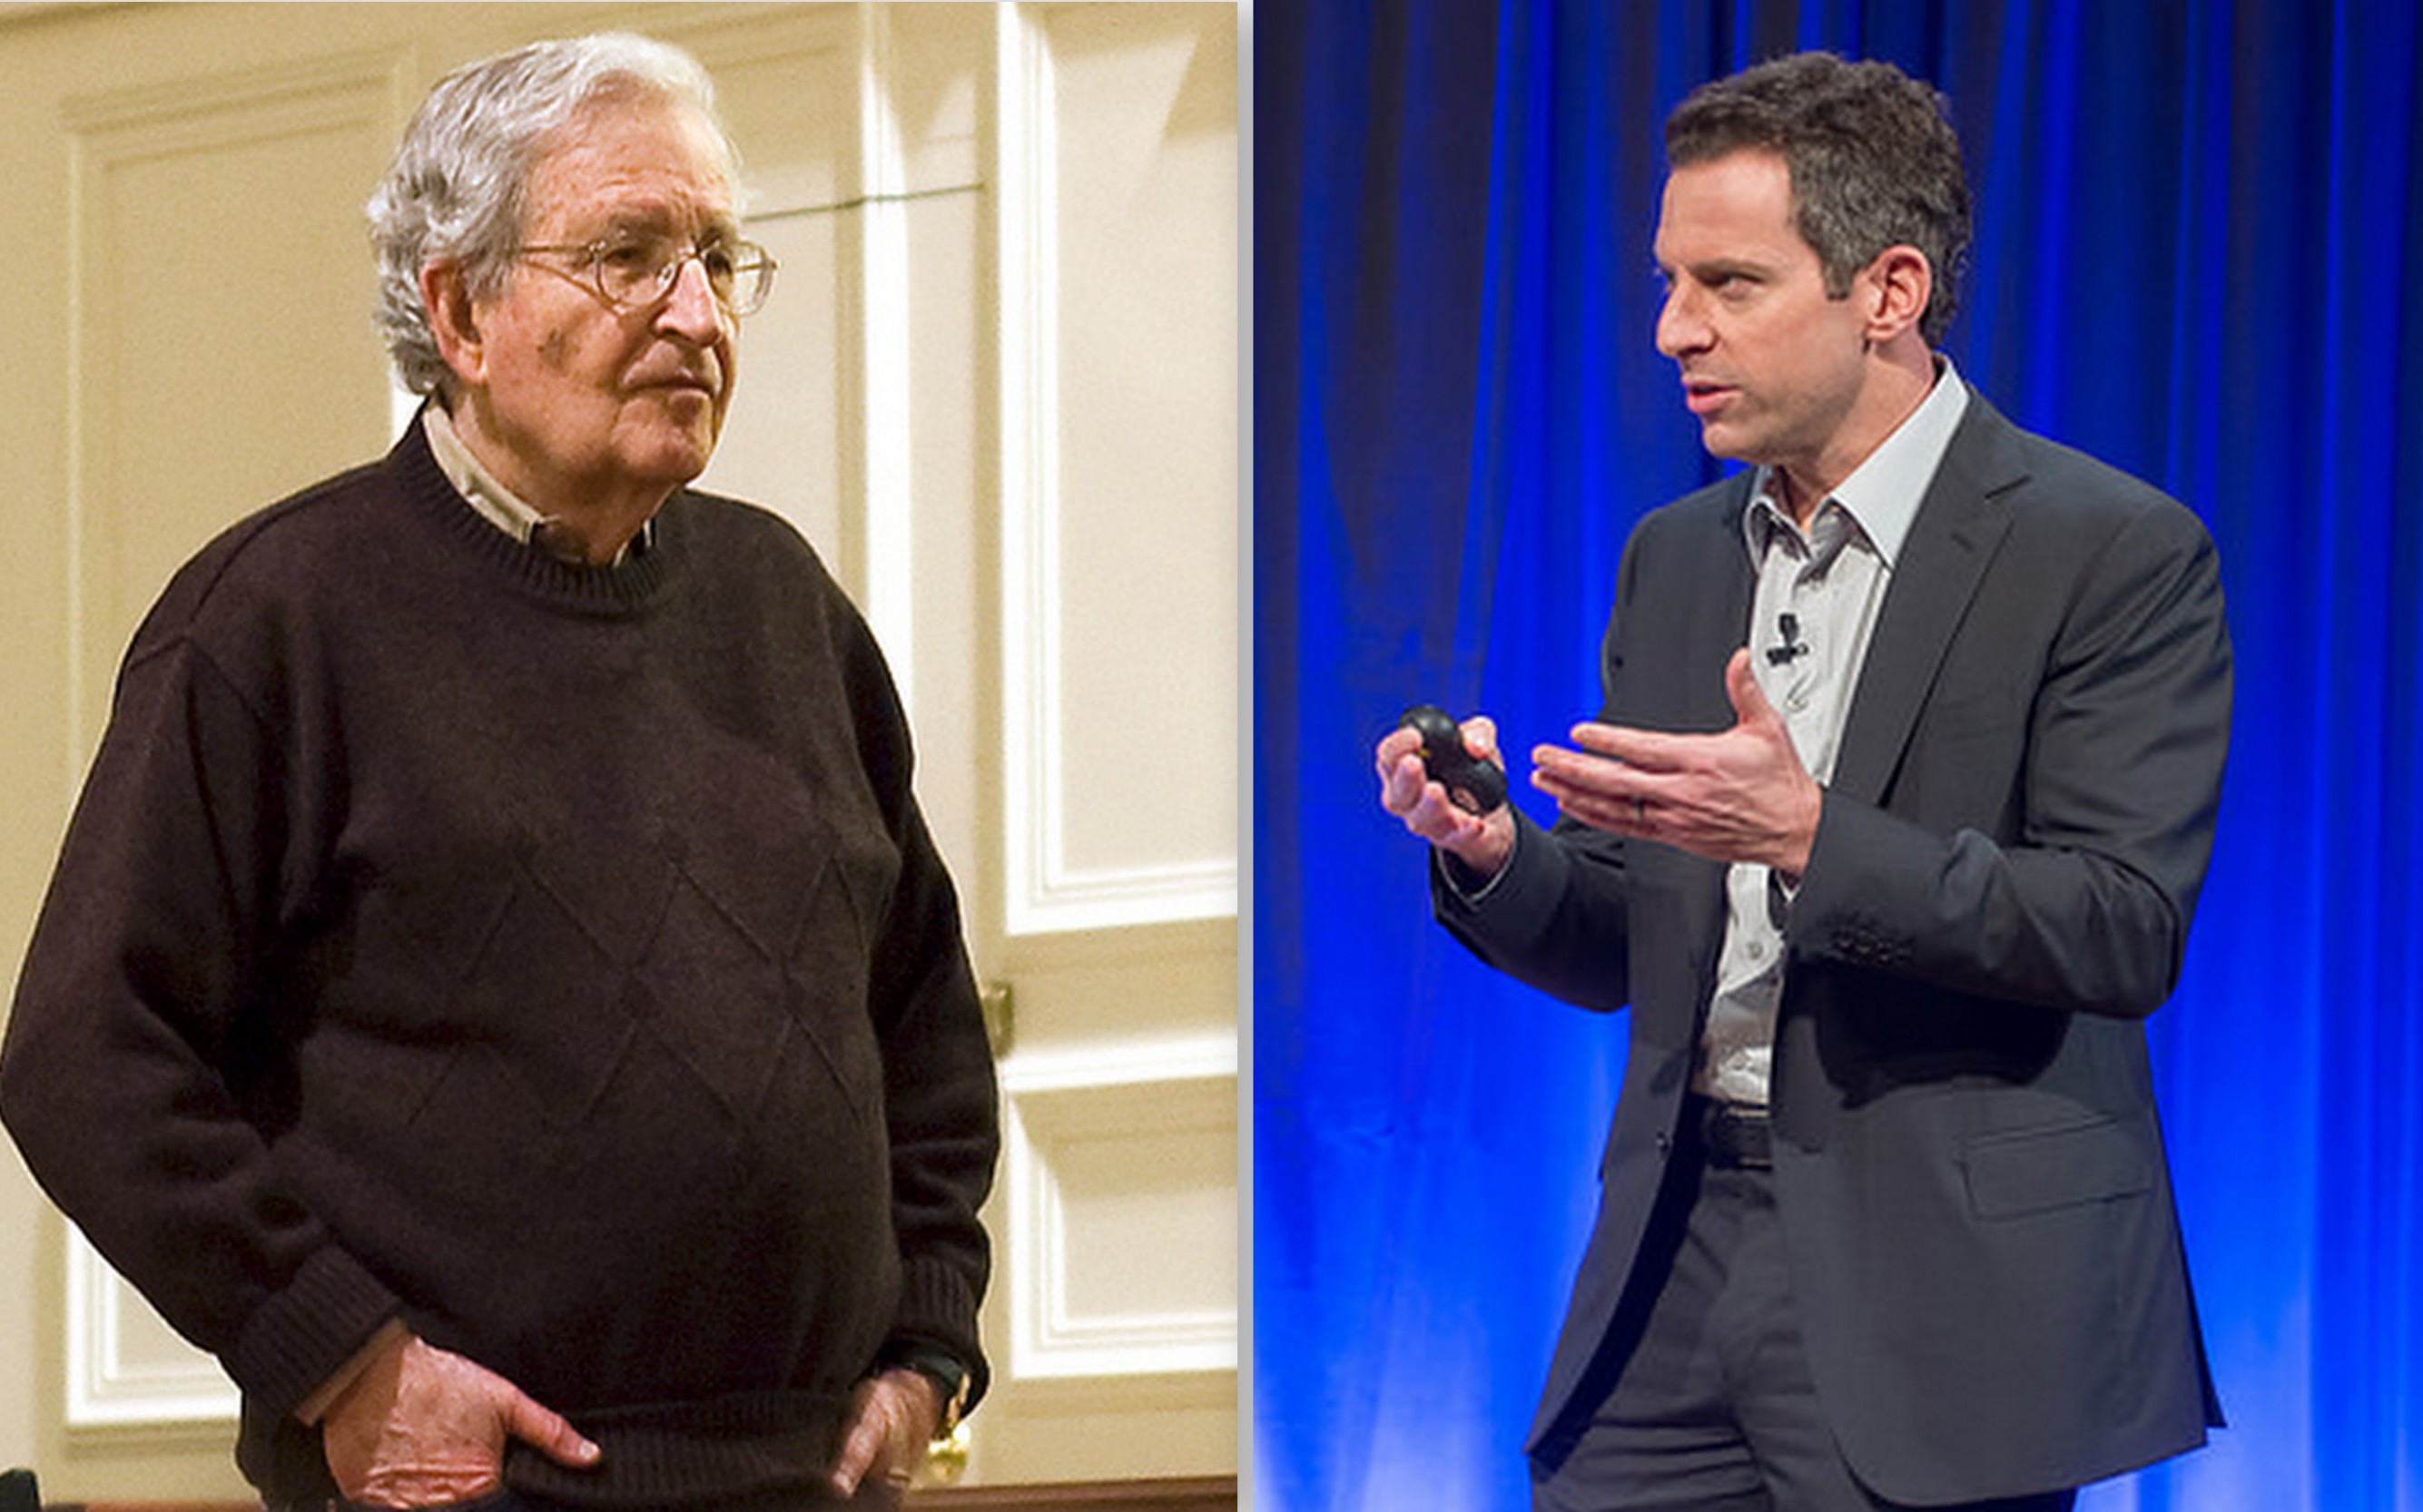 All Good Intentions: But does Sam Harris have what it takes to be Buddhist?